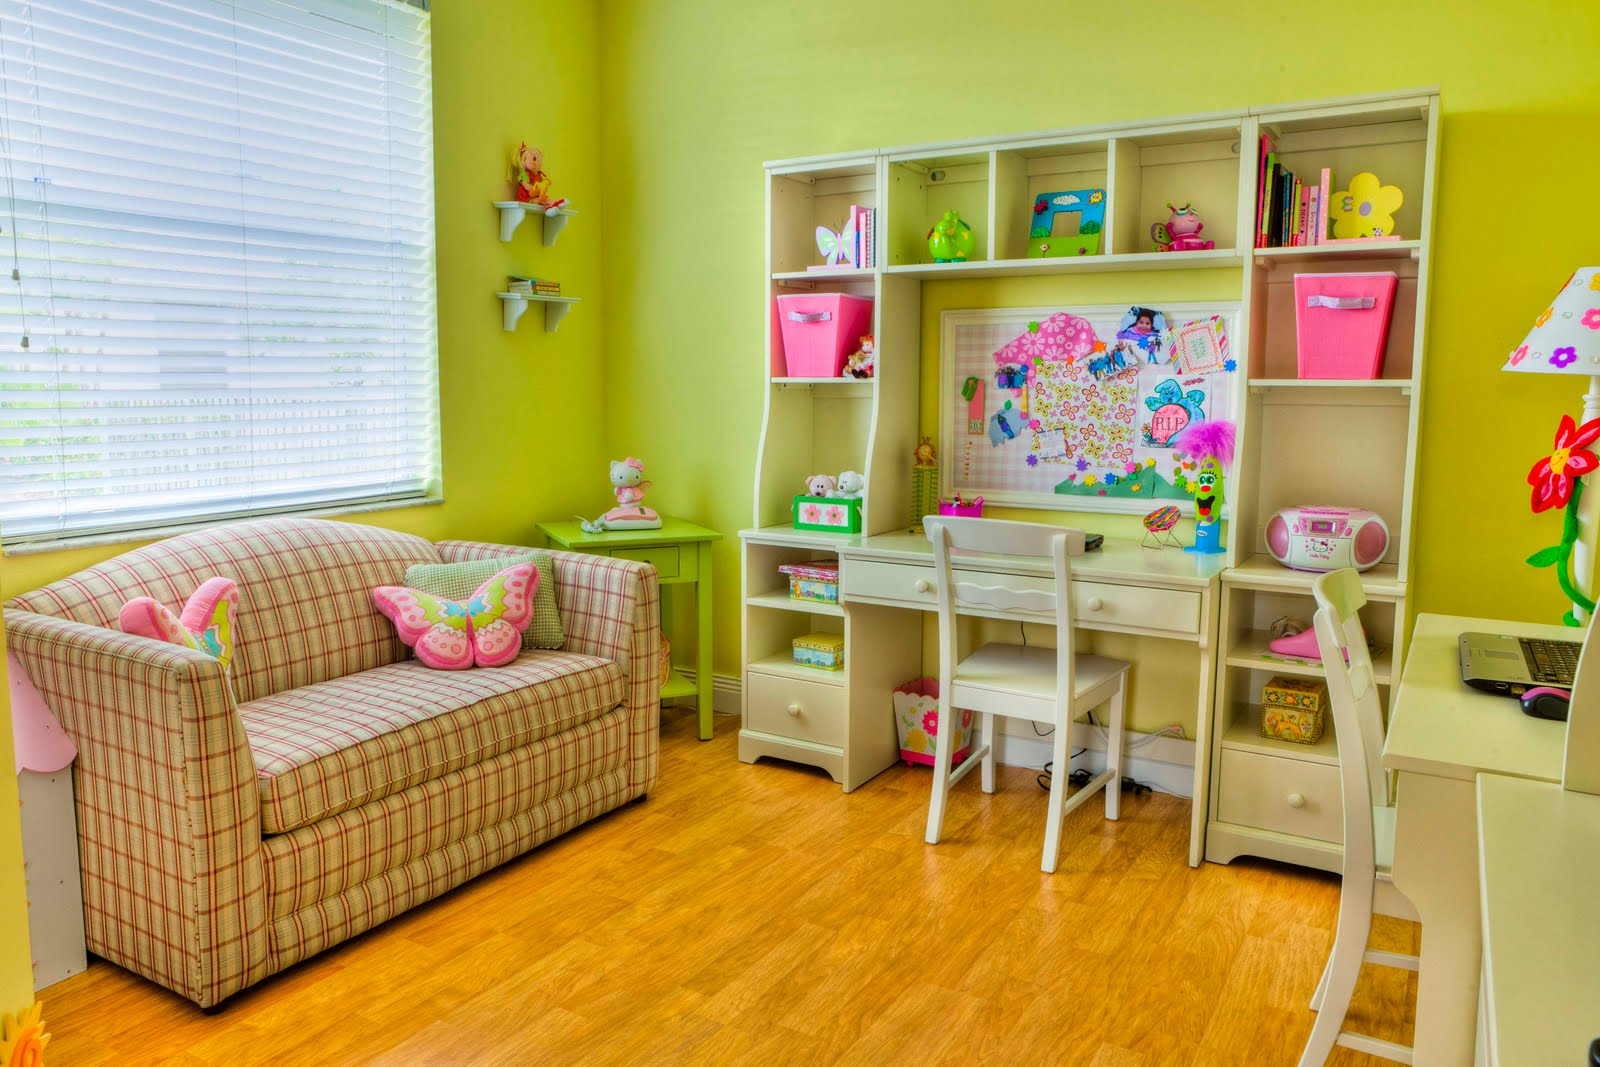 Intramuros design children 39 s room design - Colors for kids room ...